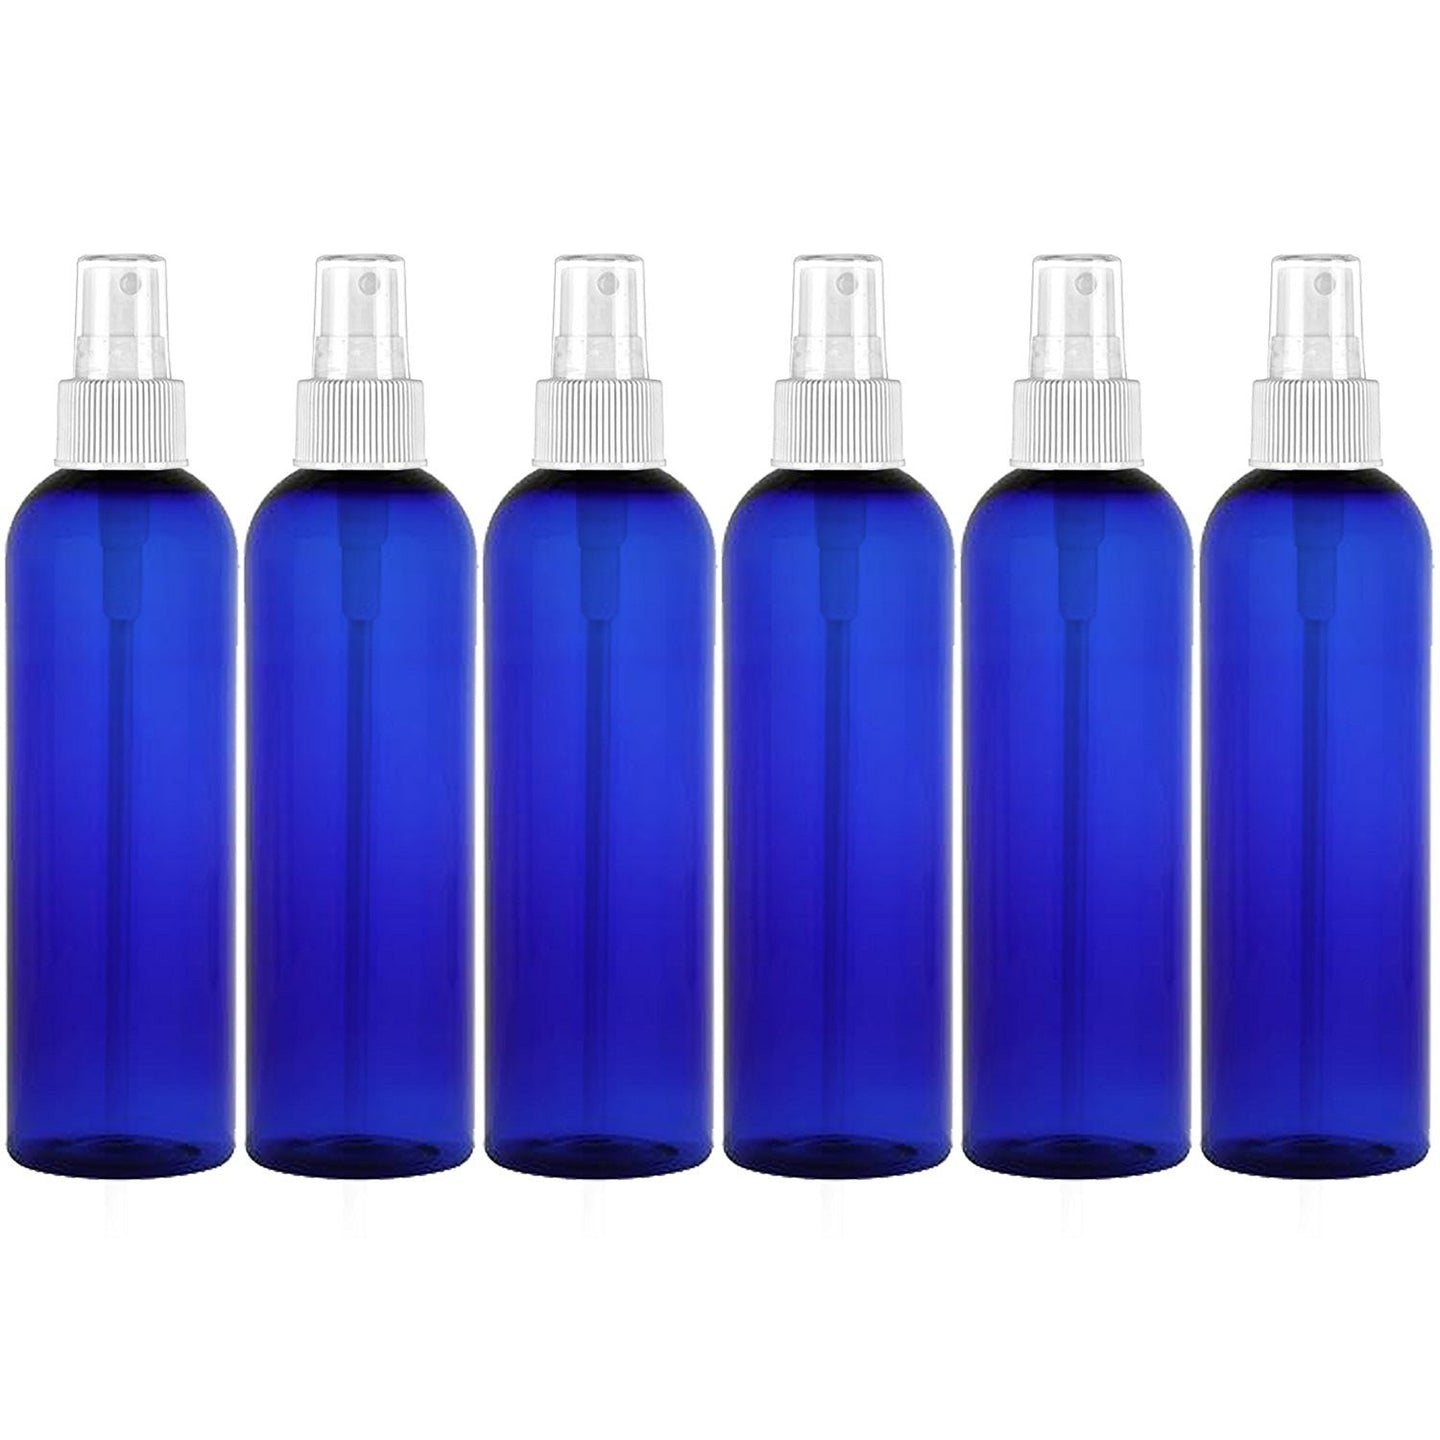 MoYo Natural Labs 8 oz Spray Bottle, Fine Mist Empty Travel Containers, BPA Free PET Plastic for Essential Oils and Liquids/Cosmetics (6 Pack, Cobalt Blue)